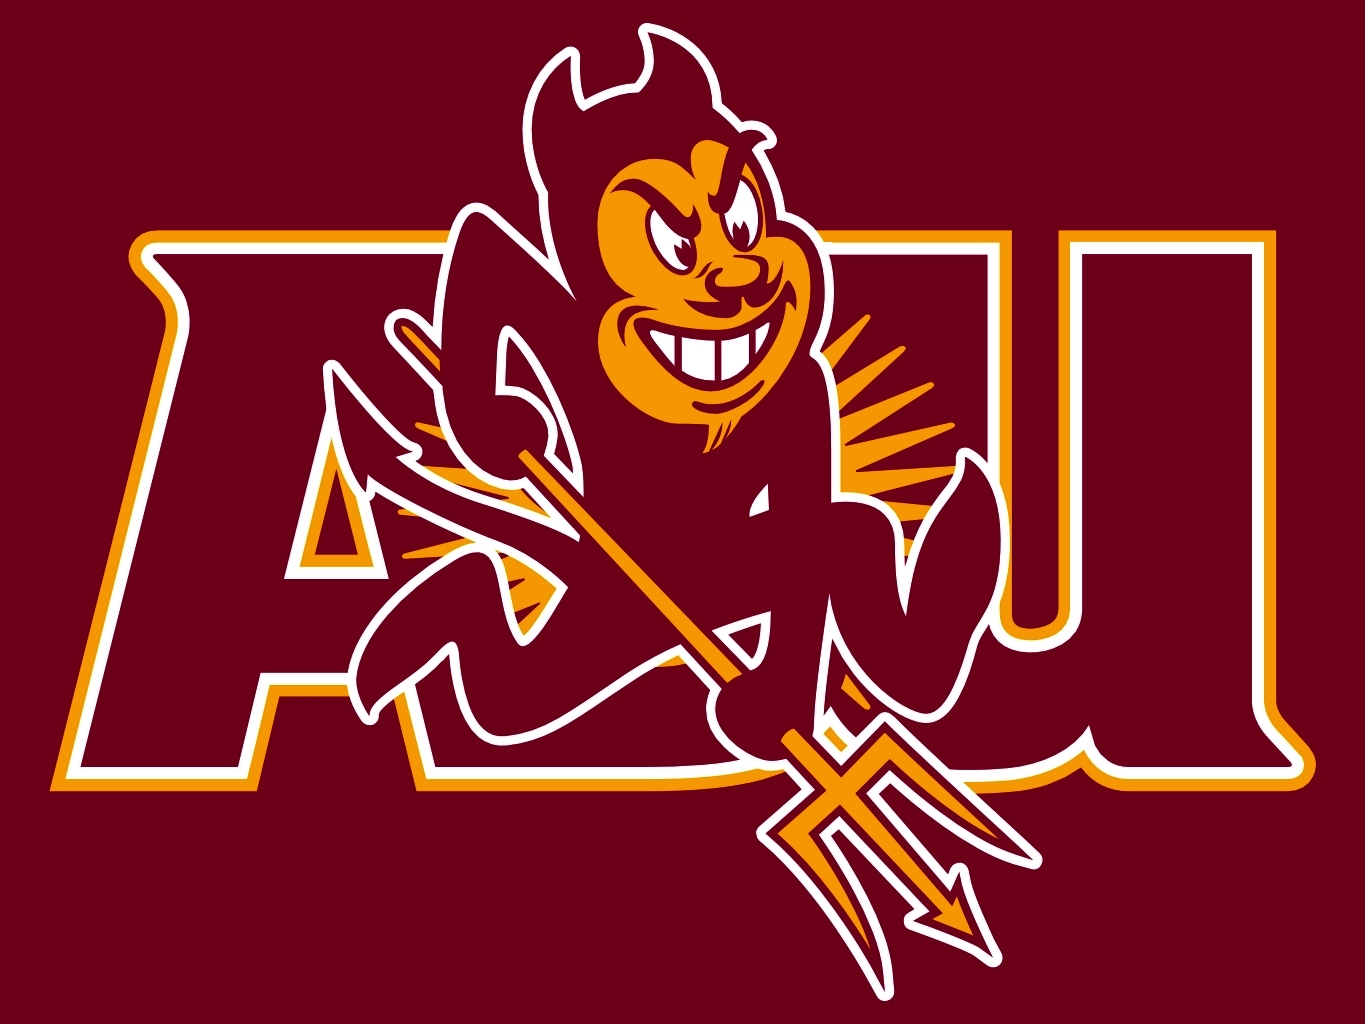 1000+ images about ASU on Pinterest | Football team, Metals and Logos